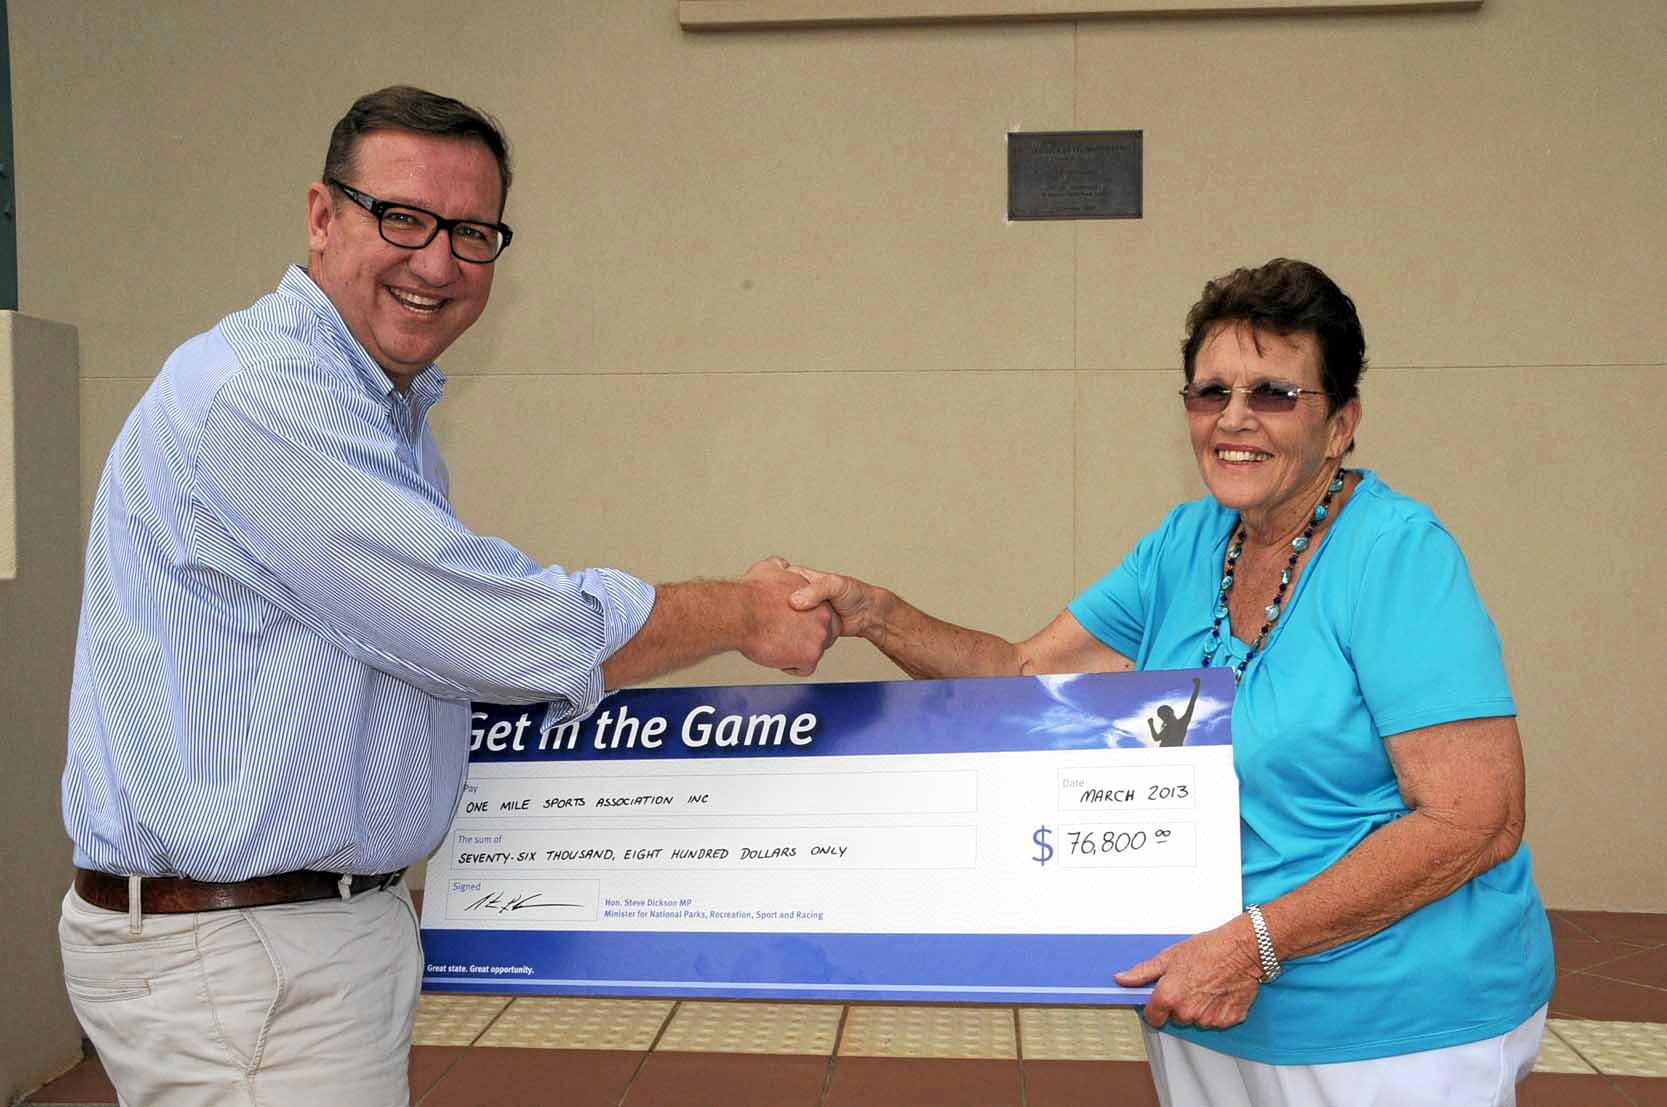 Get in the Game cheque presentation.  Member for Gibson and Pam Tindall Secretary of One Mile Sports Association.  The $76,800 will go towards installing lights at Jim Geiger Oval. Photo Tanya Easterby / The Gympie Times